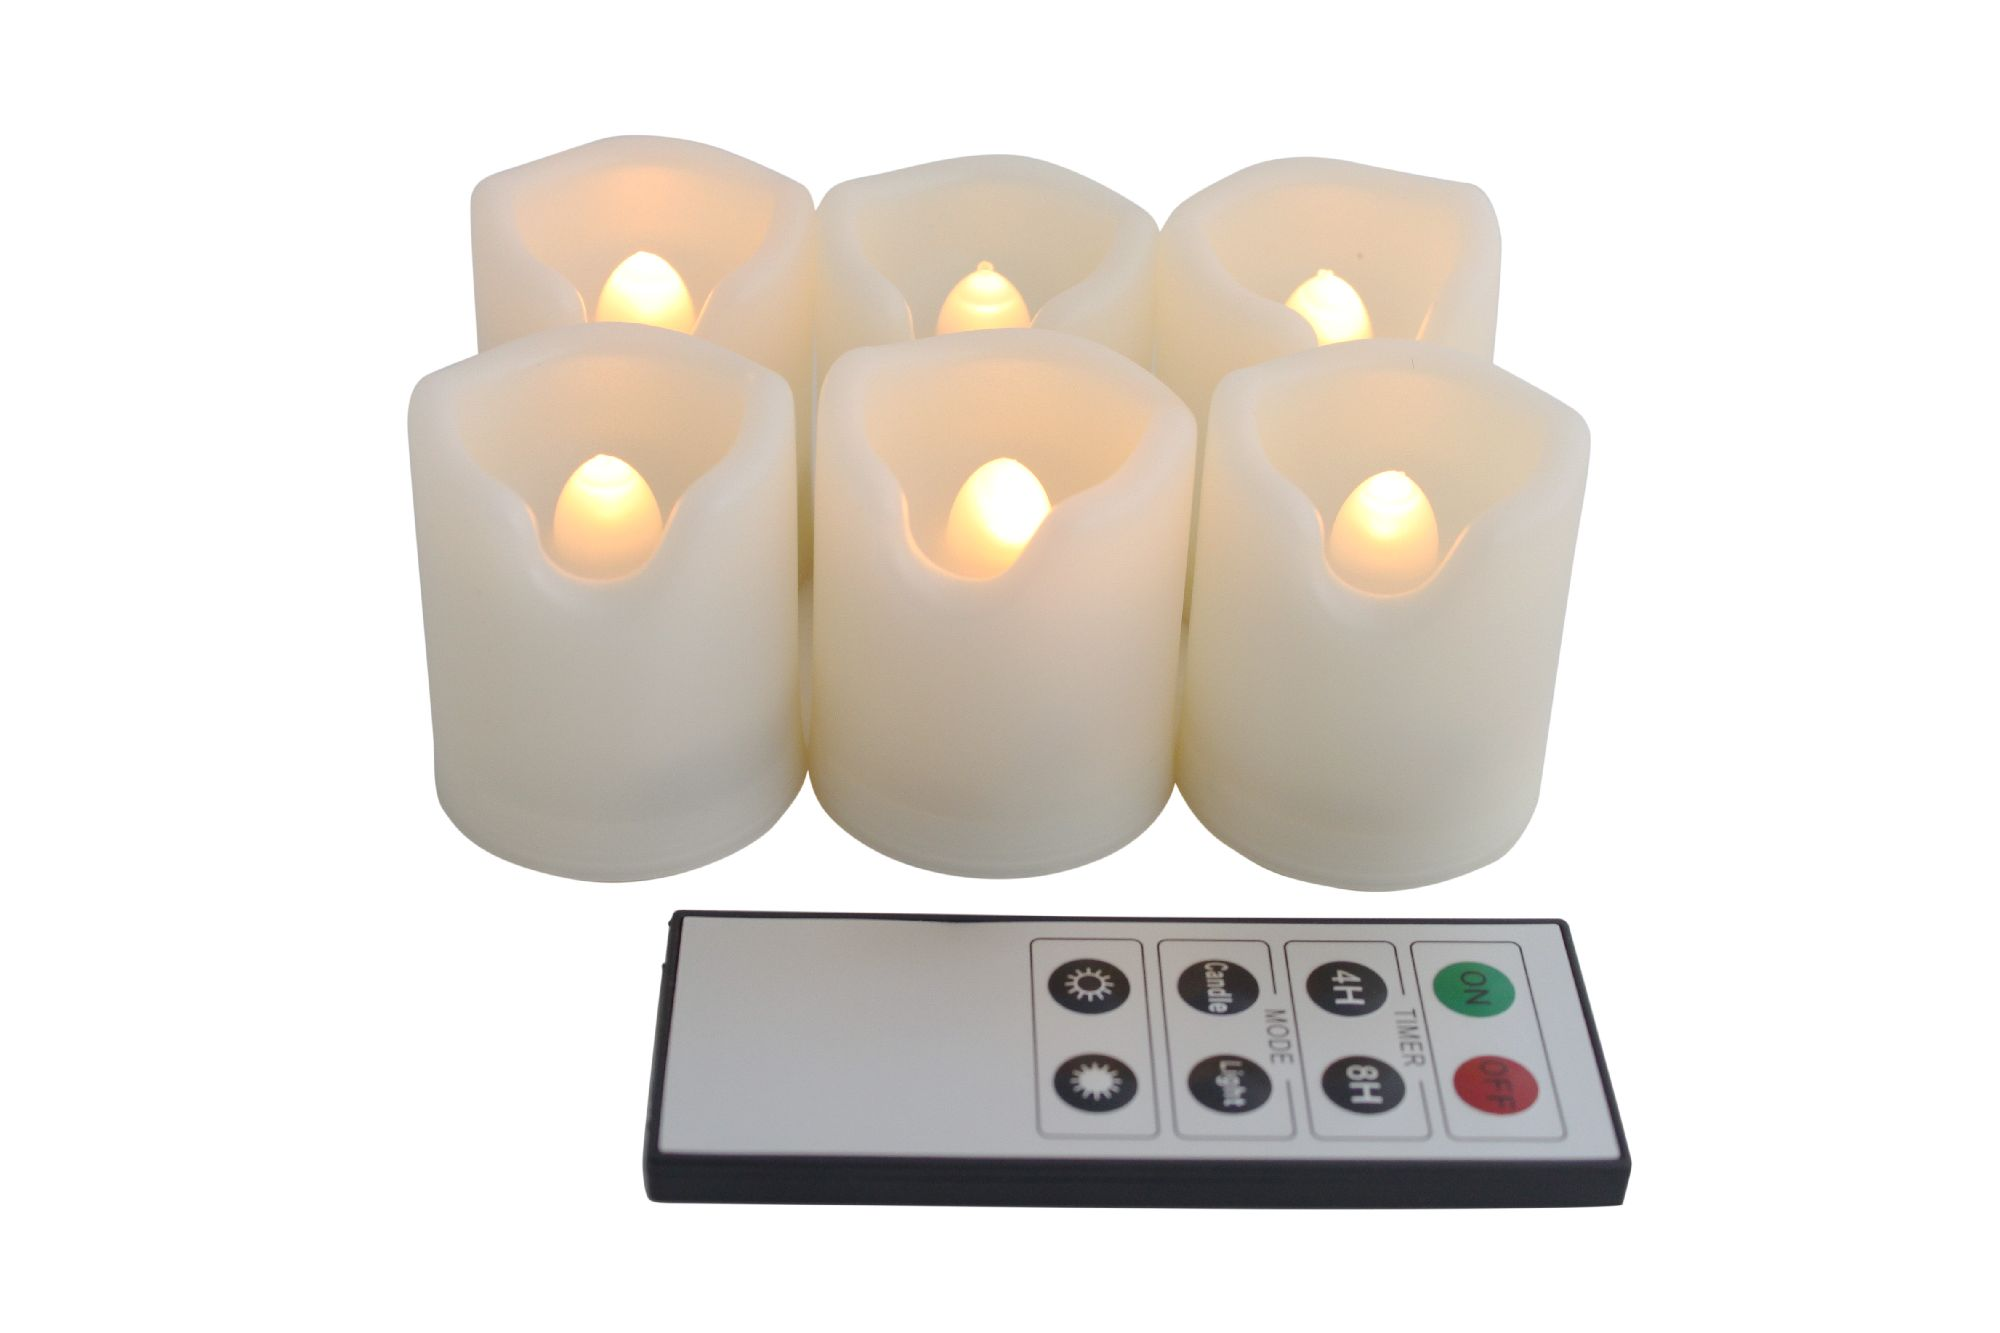 EcoGecko Set of 6 Indoor Outdoor Flameless Warm Glow Votive Candles with Remote and Timer, Battery Powered Candles, Tealights, Batteries Included